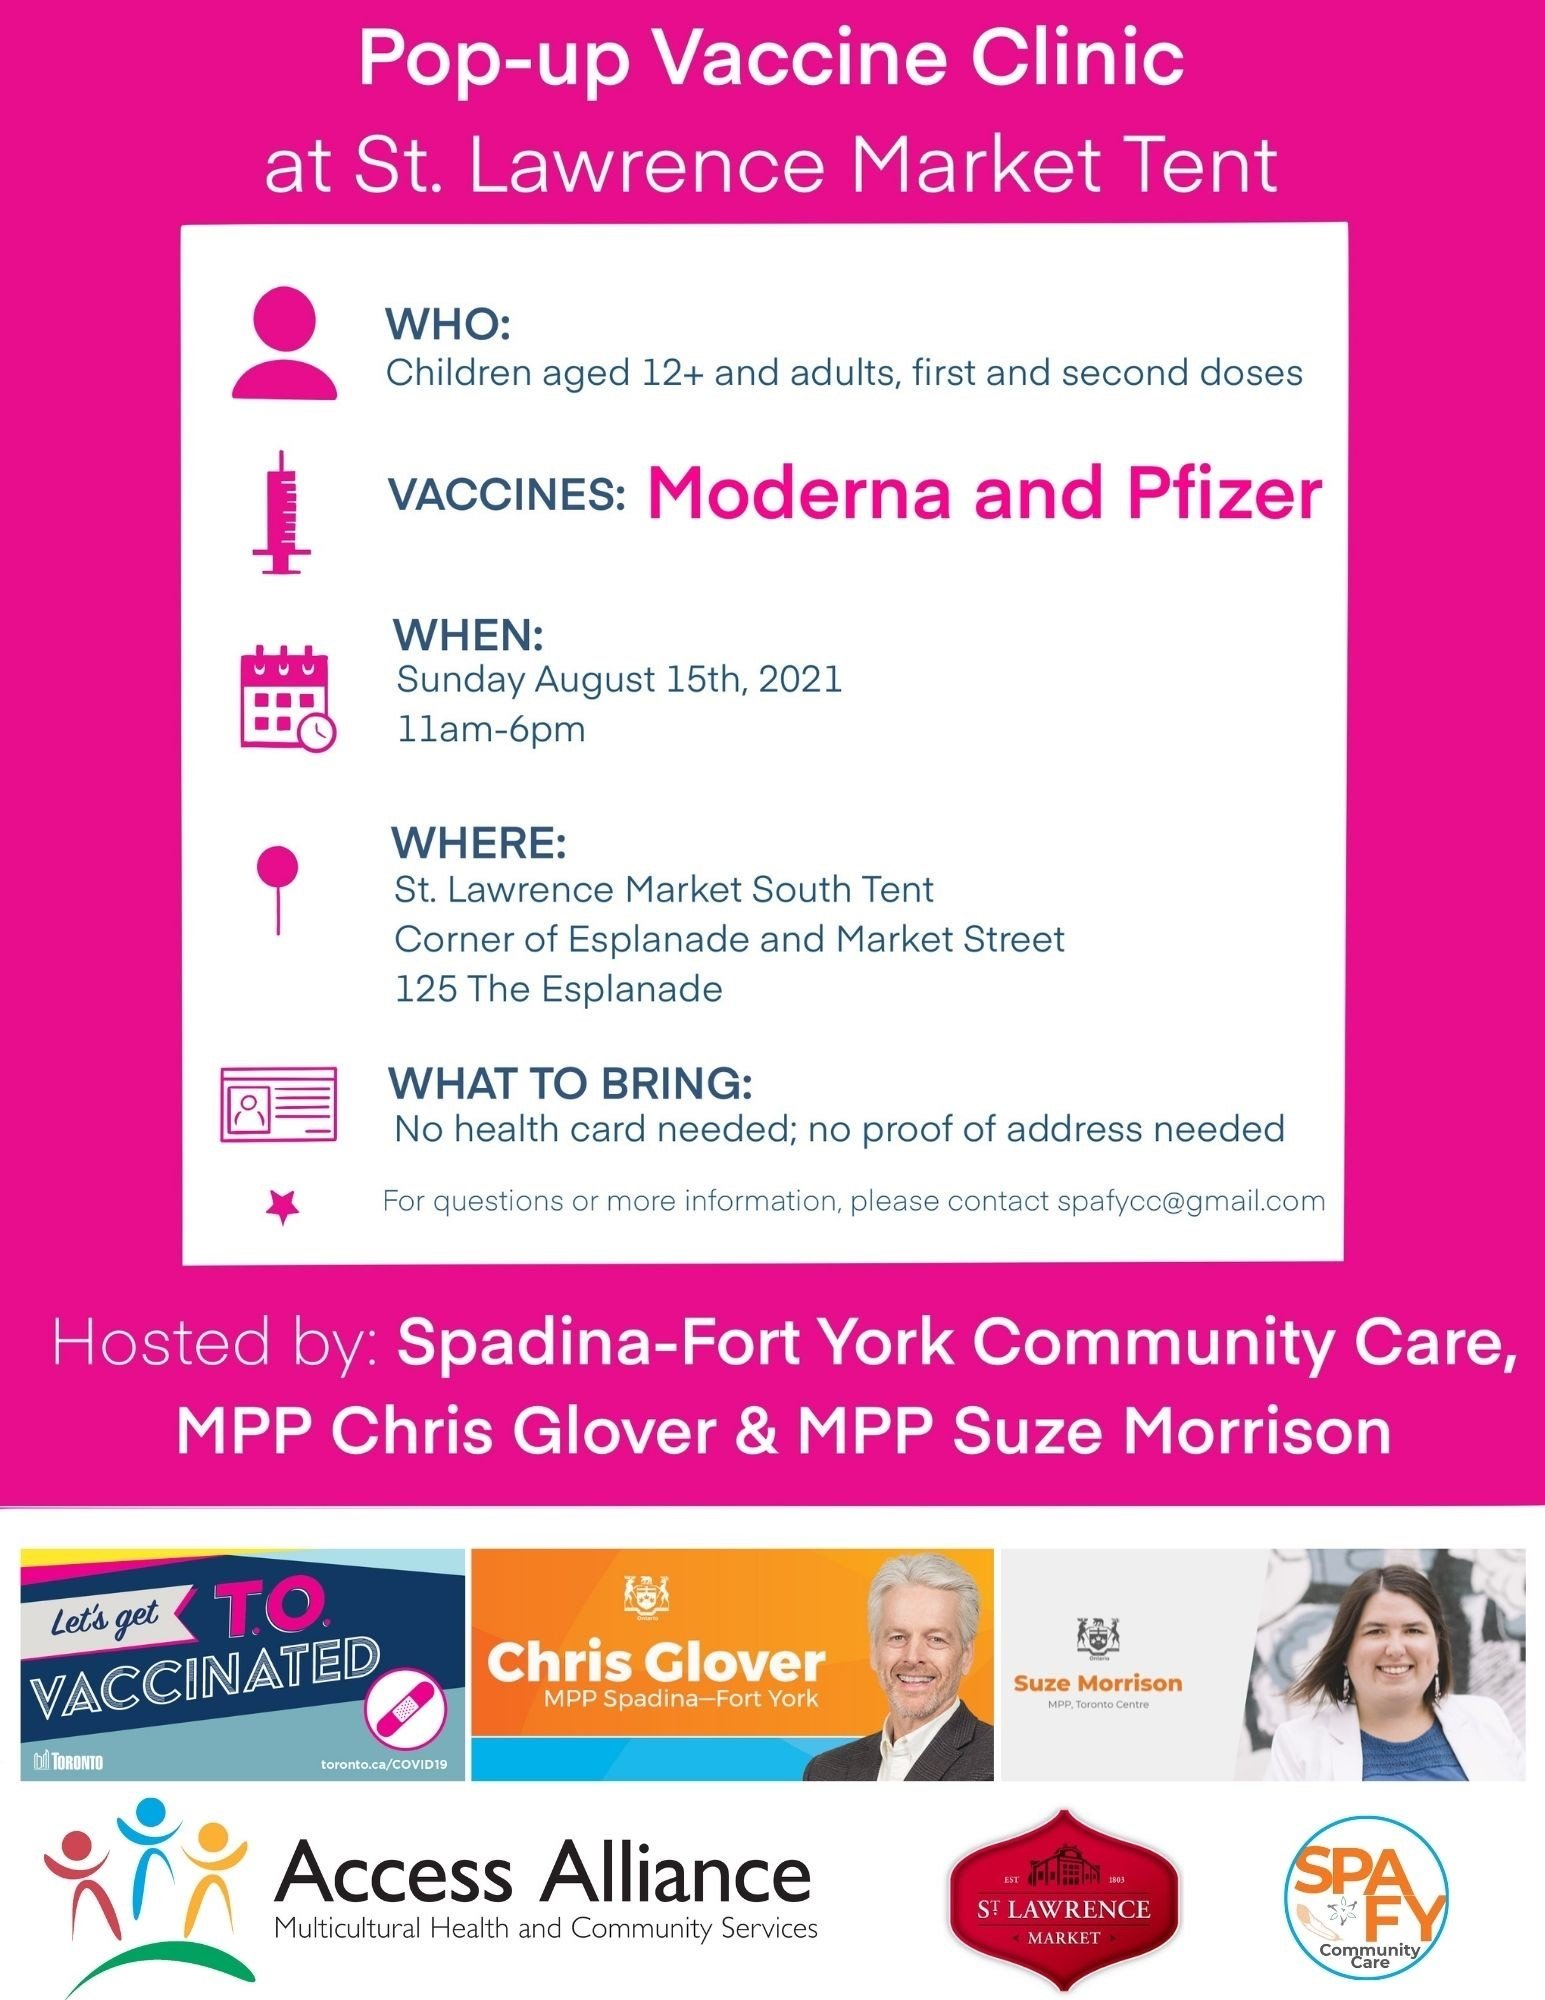 Vaccine Pop-Up Clinic at St Lawrence Market Tent